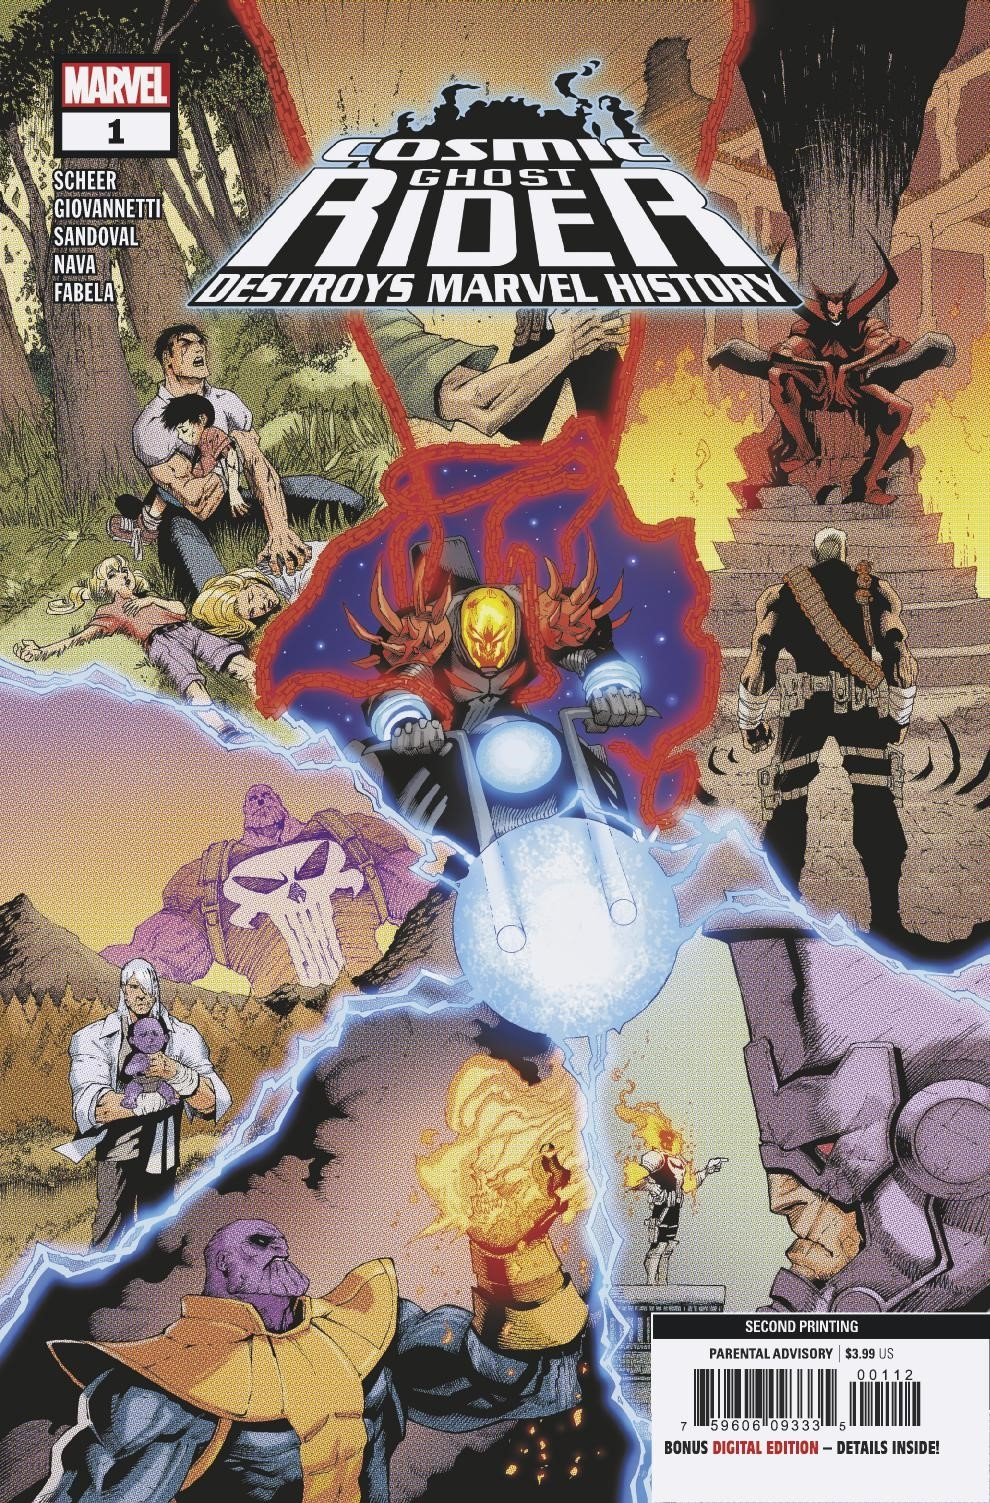 COSMIC GHOST RIDER DESTROYS MARVEL HISTORY #1 (OF 6) 2ND PTG